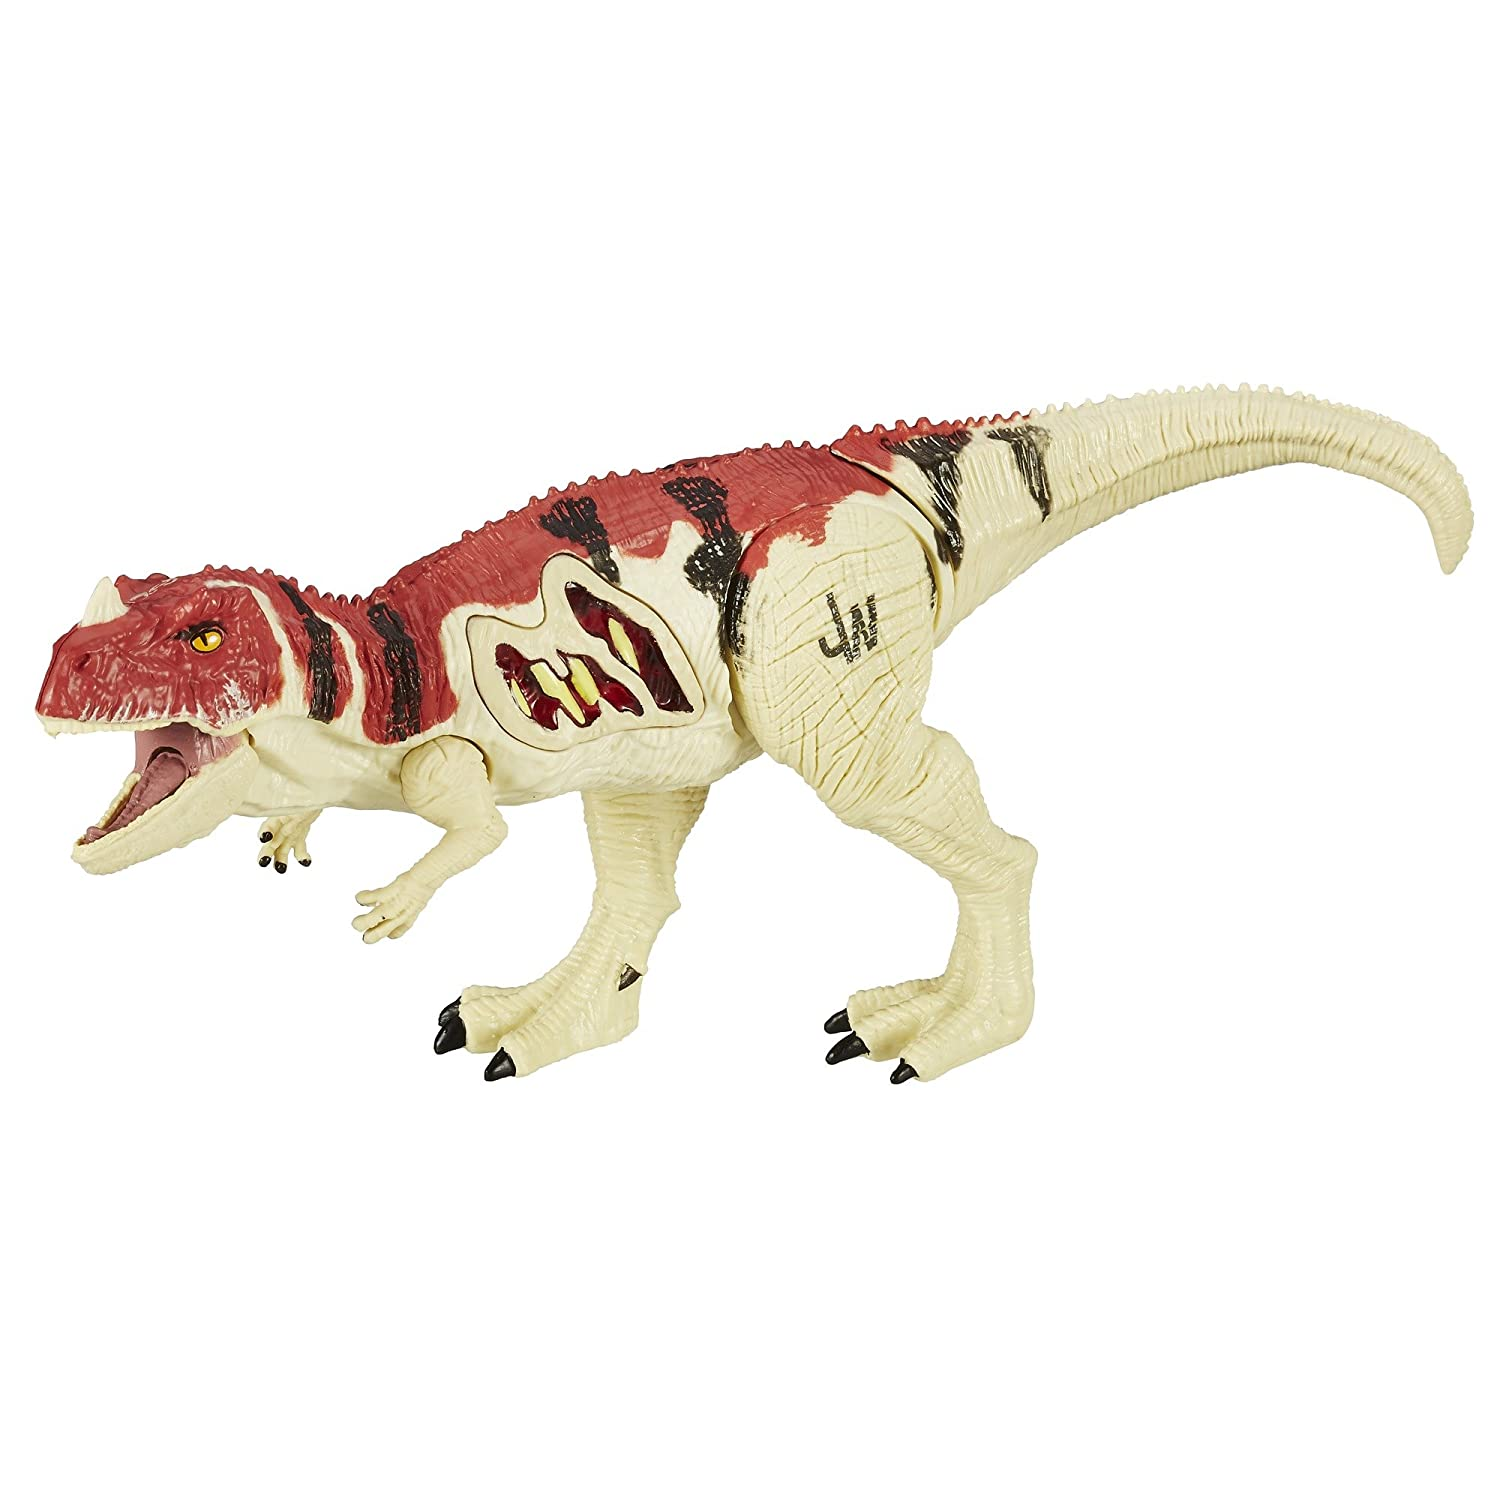 Hasbro Jurassic World - Growler Ceratosaurus: Amazon.es: Juguetes y juegos